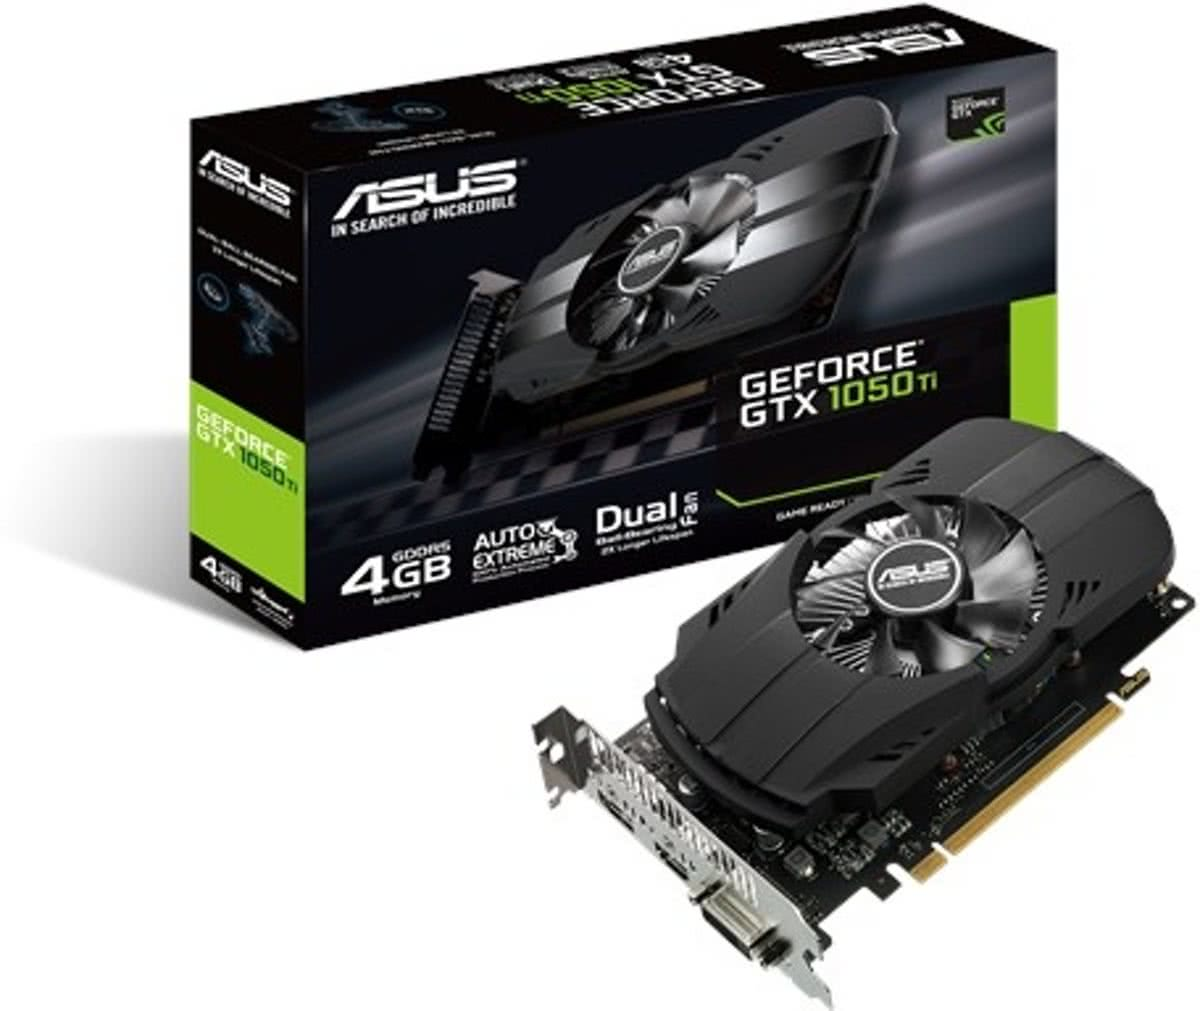 Asus Phoenix GeForce GTX 1050 Ti 4GB